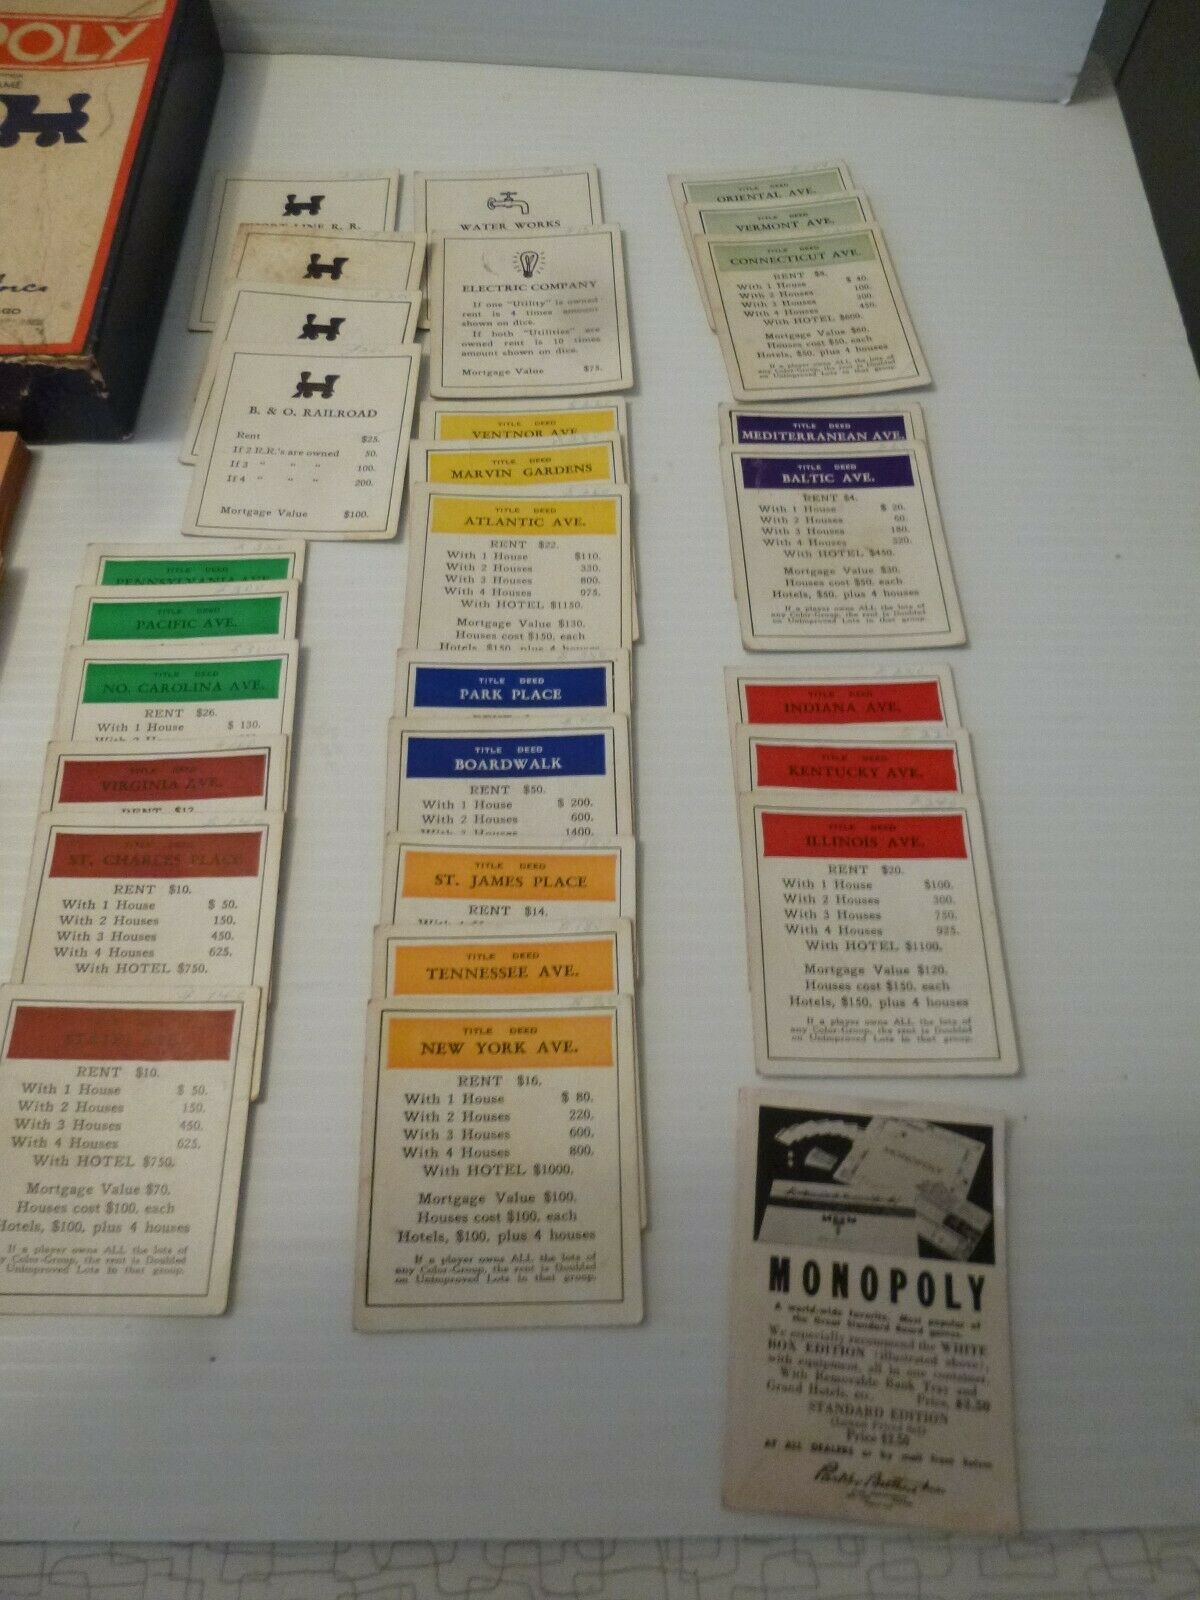 Vintage Late 1930s Monopoly Game Box wooden pieces,cards,Money image 3